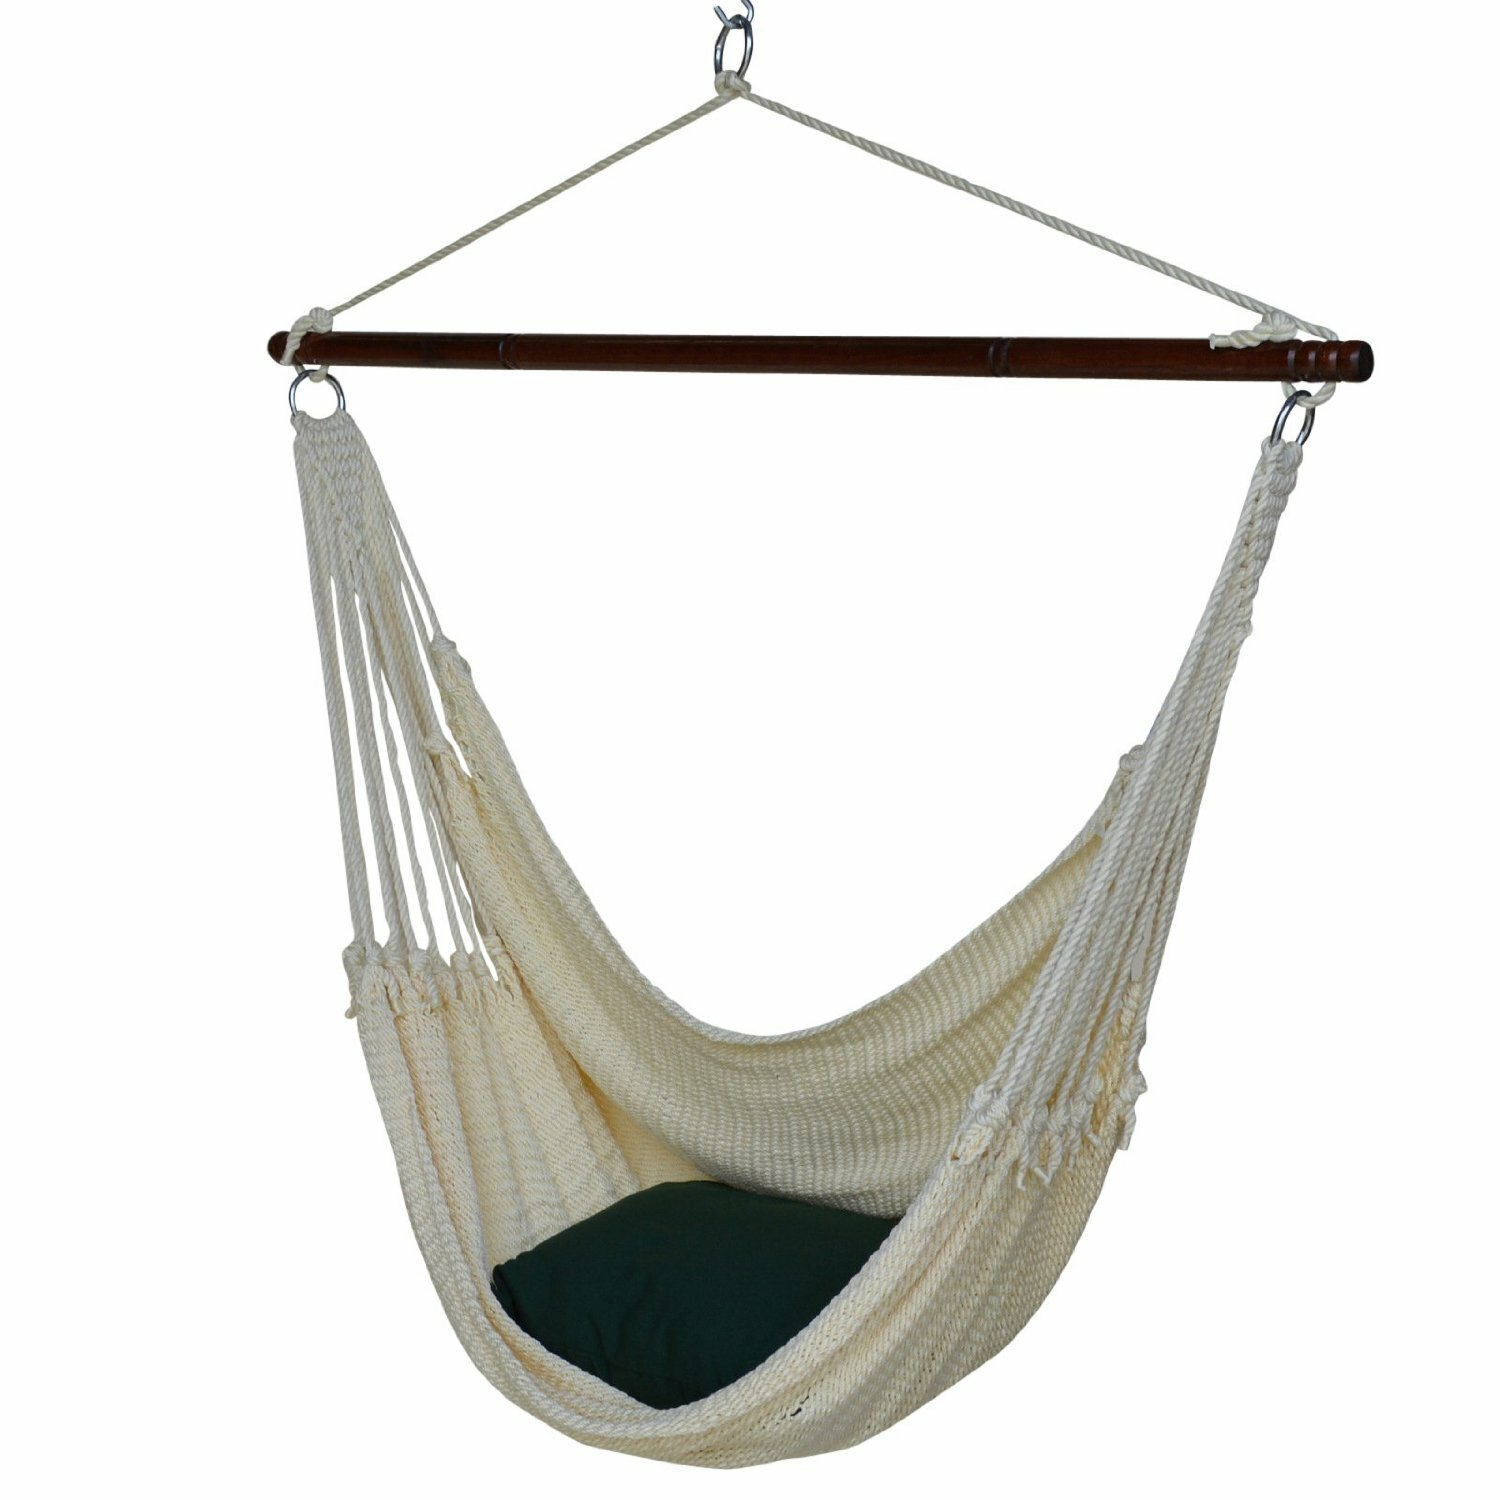 Kwhammocks Jumbo Caribbean Hammock Chair Amp Reviews Wayfair